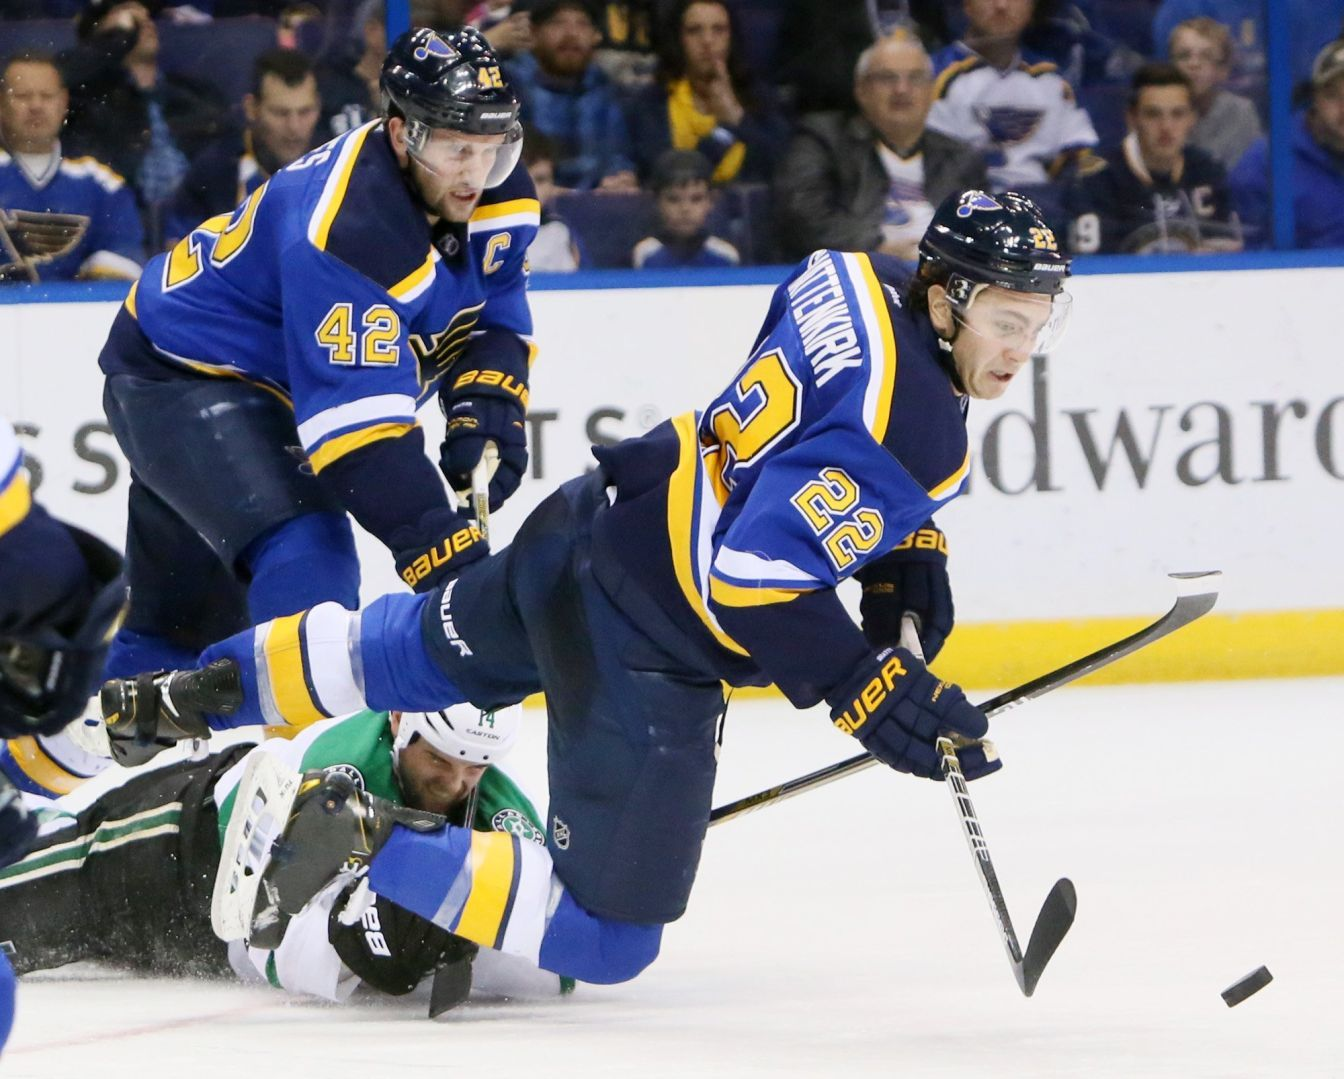 Shattenkirk recovering after surgery